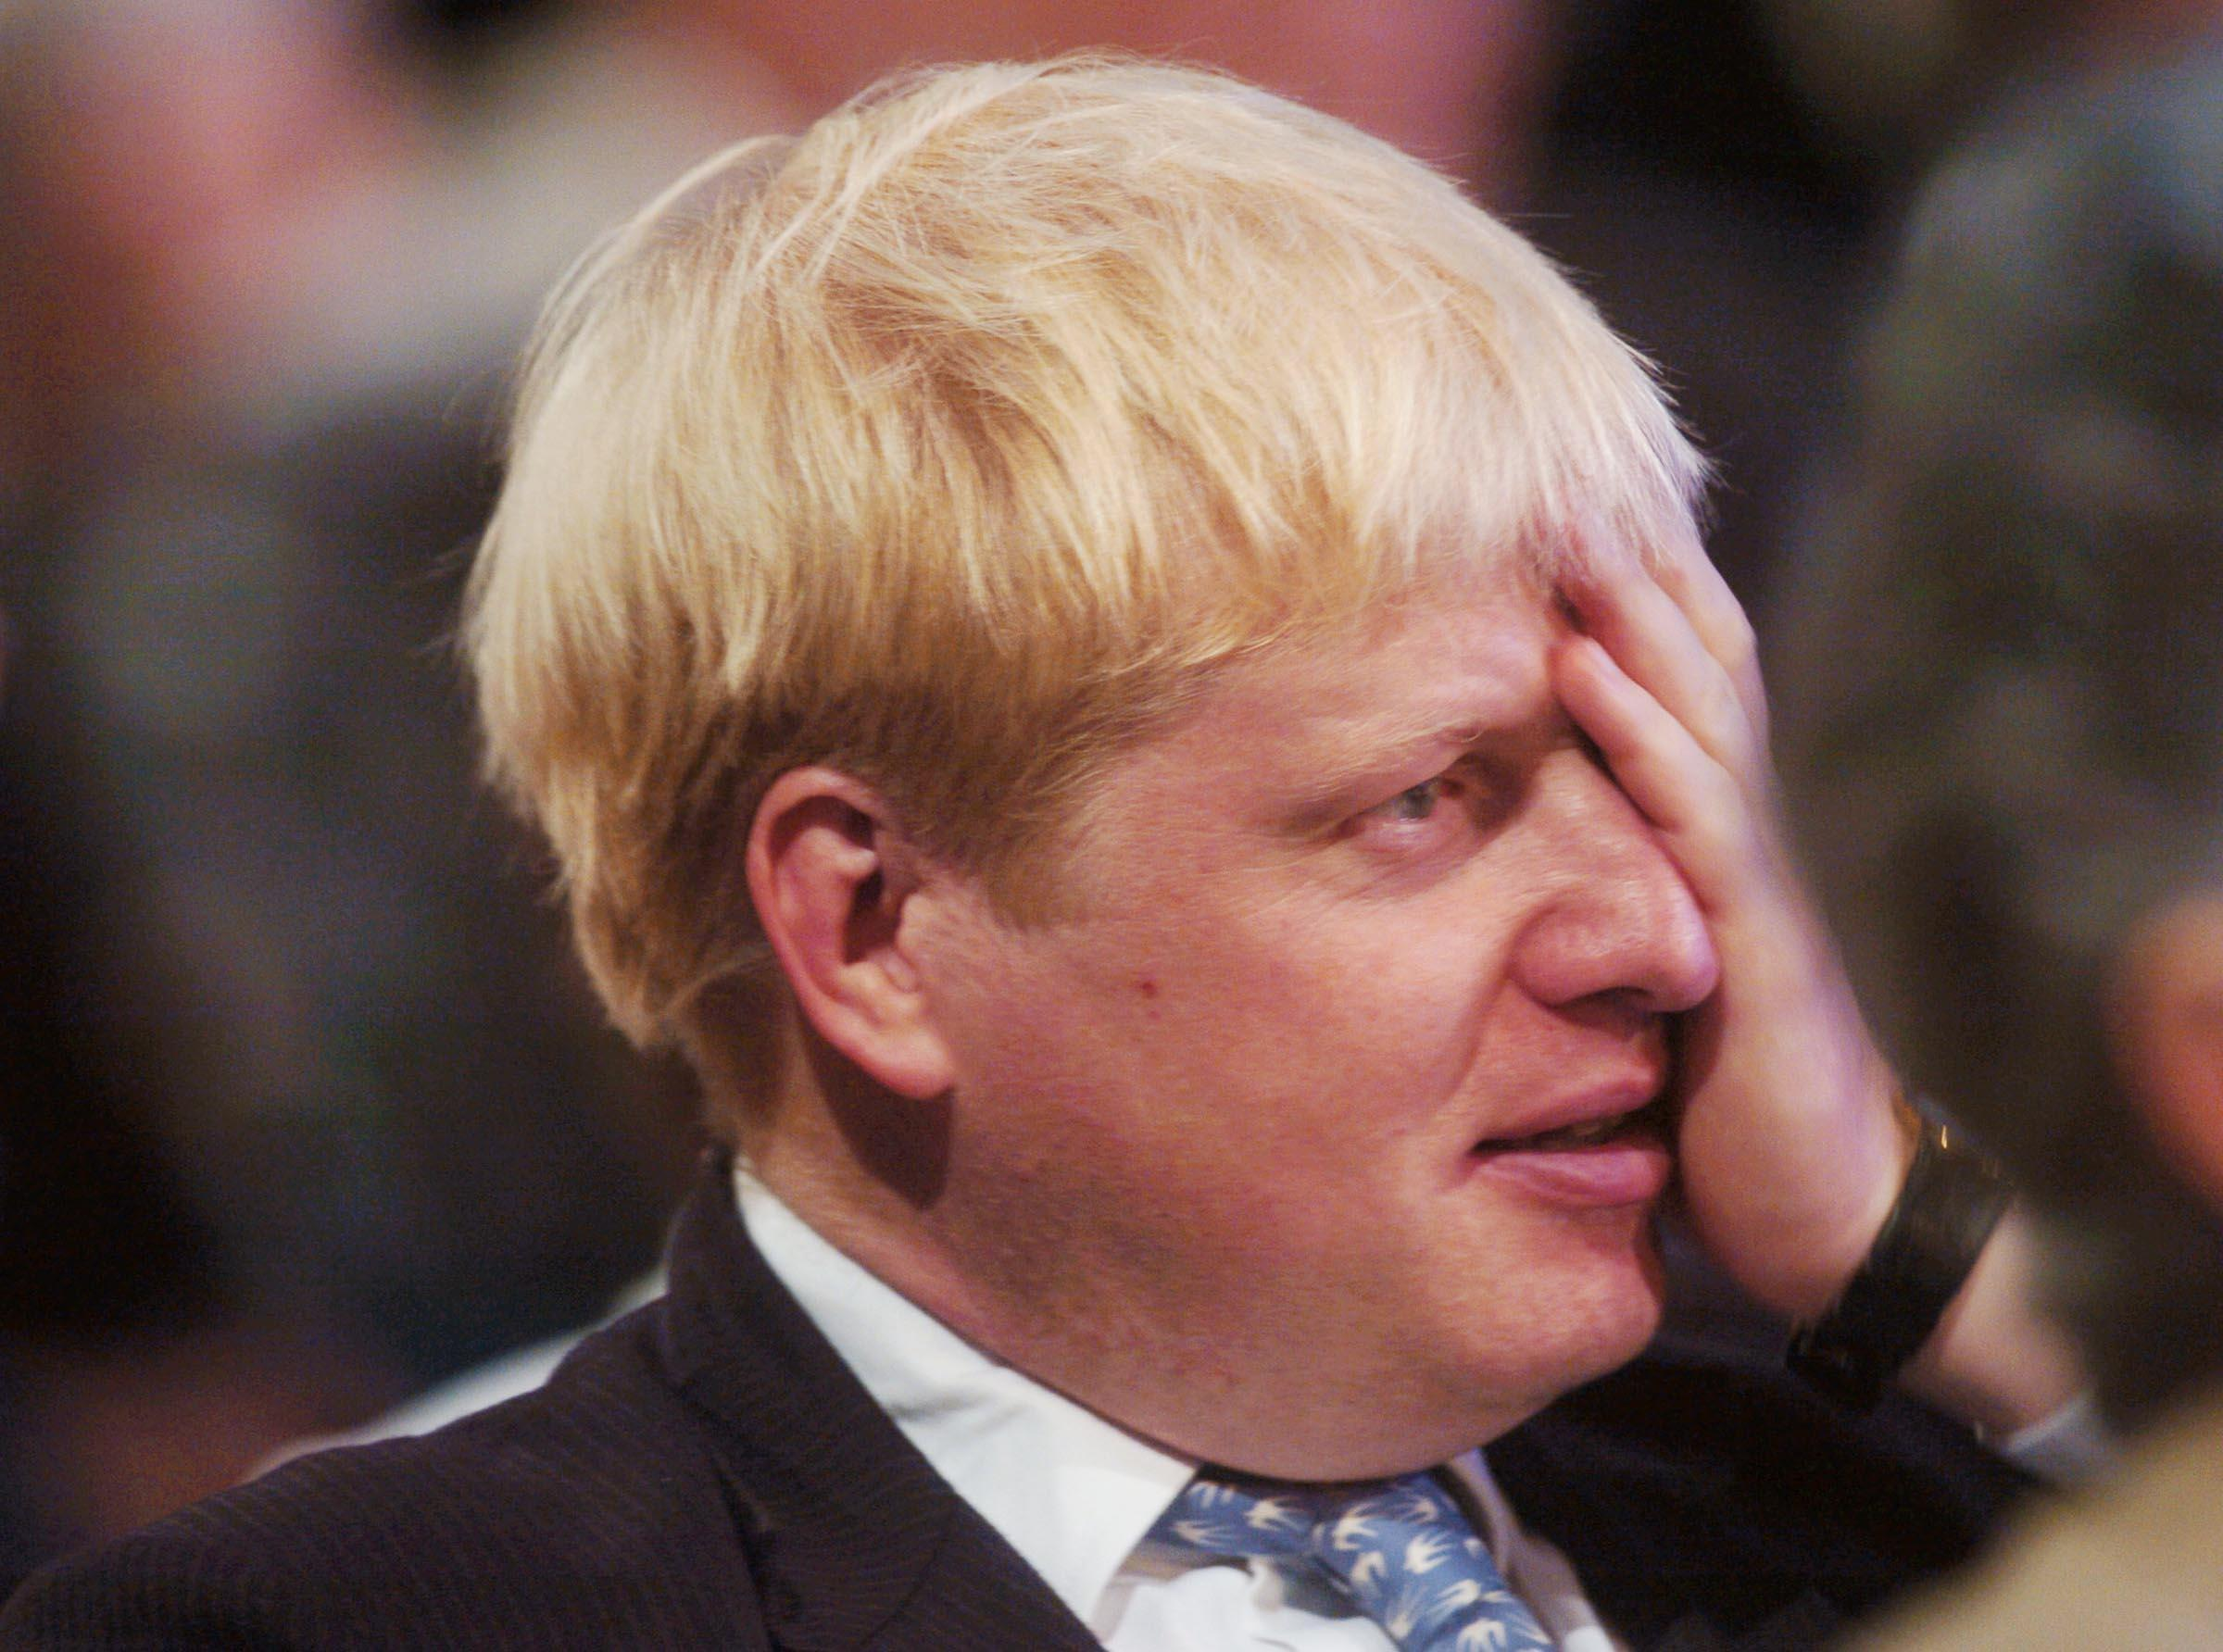 Conservative Party MP Boris Johnson sits through a series of speeches during the Conservative Party Conference in Bournemouth.